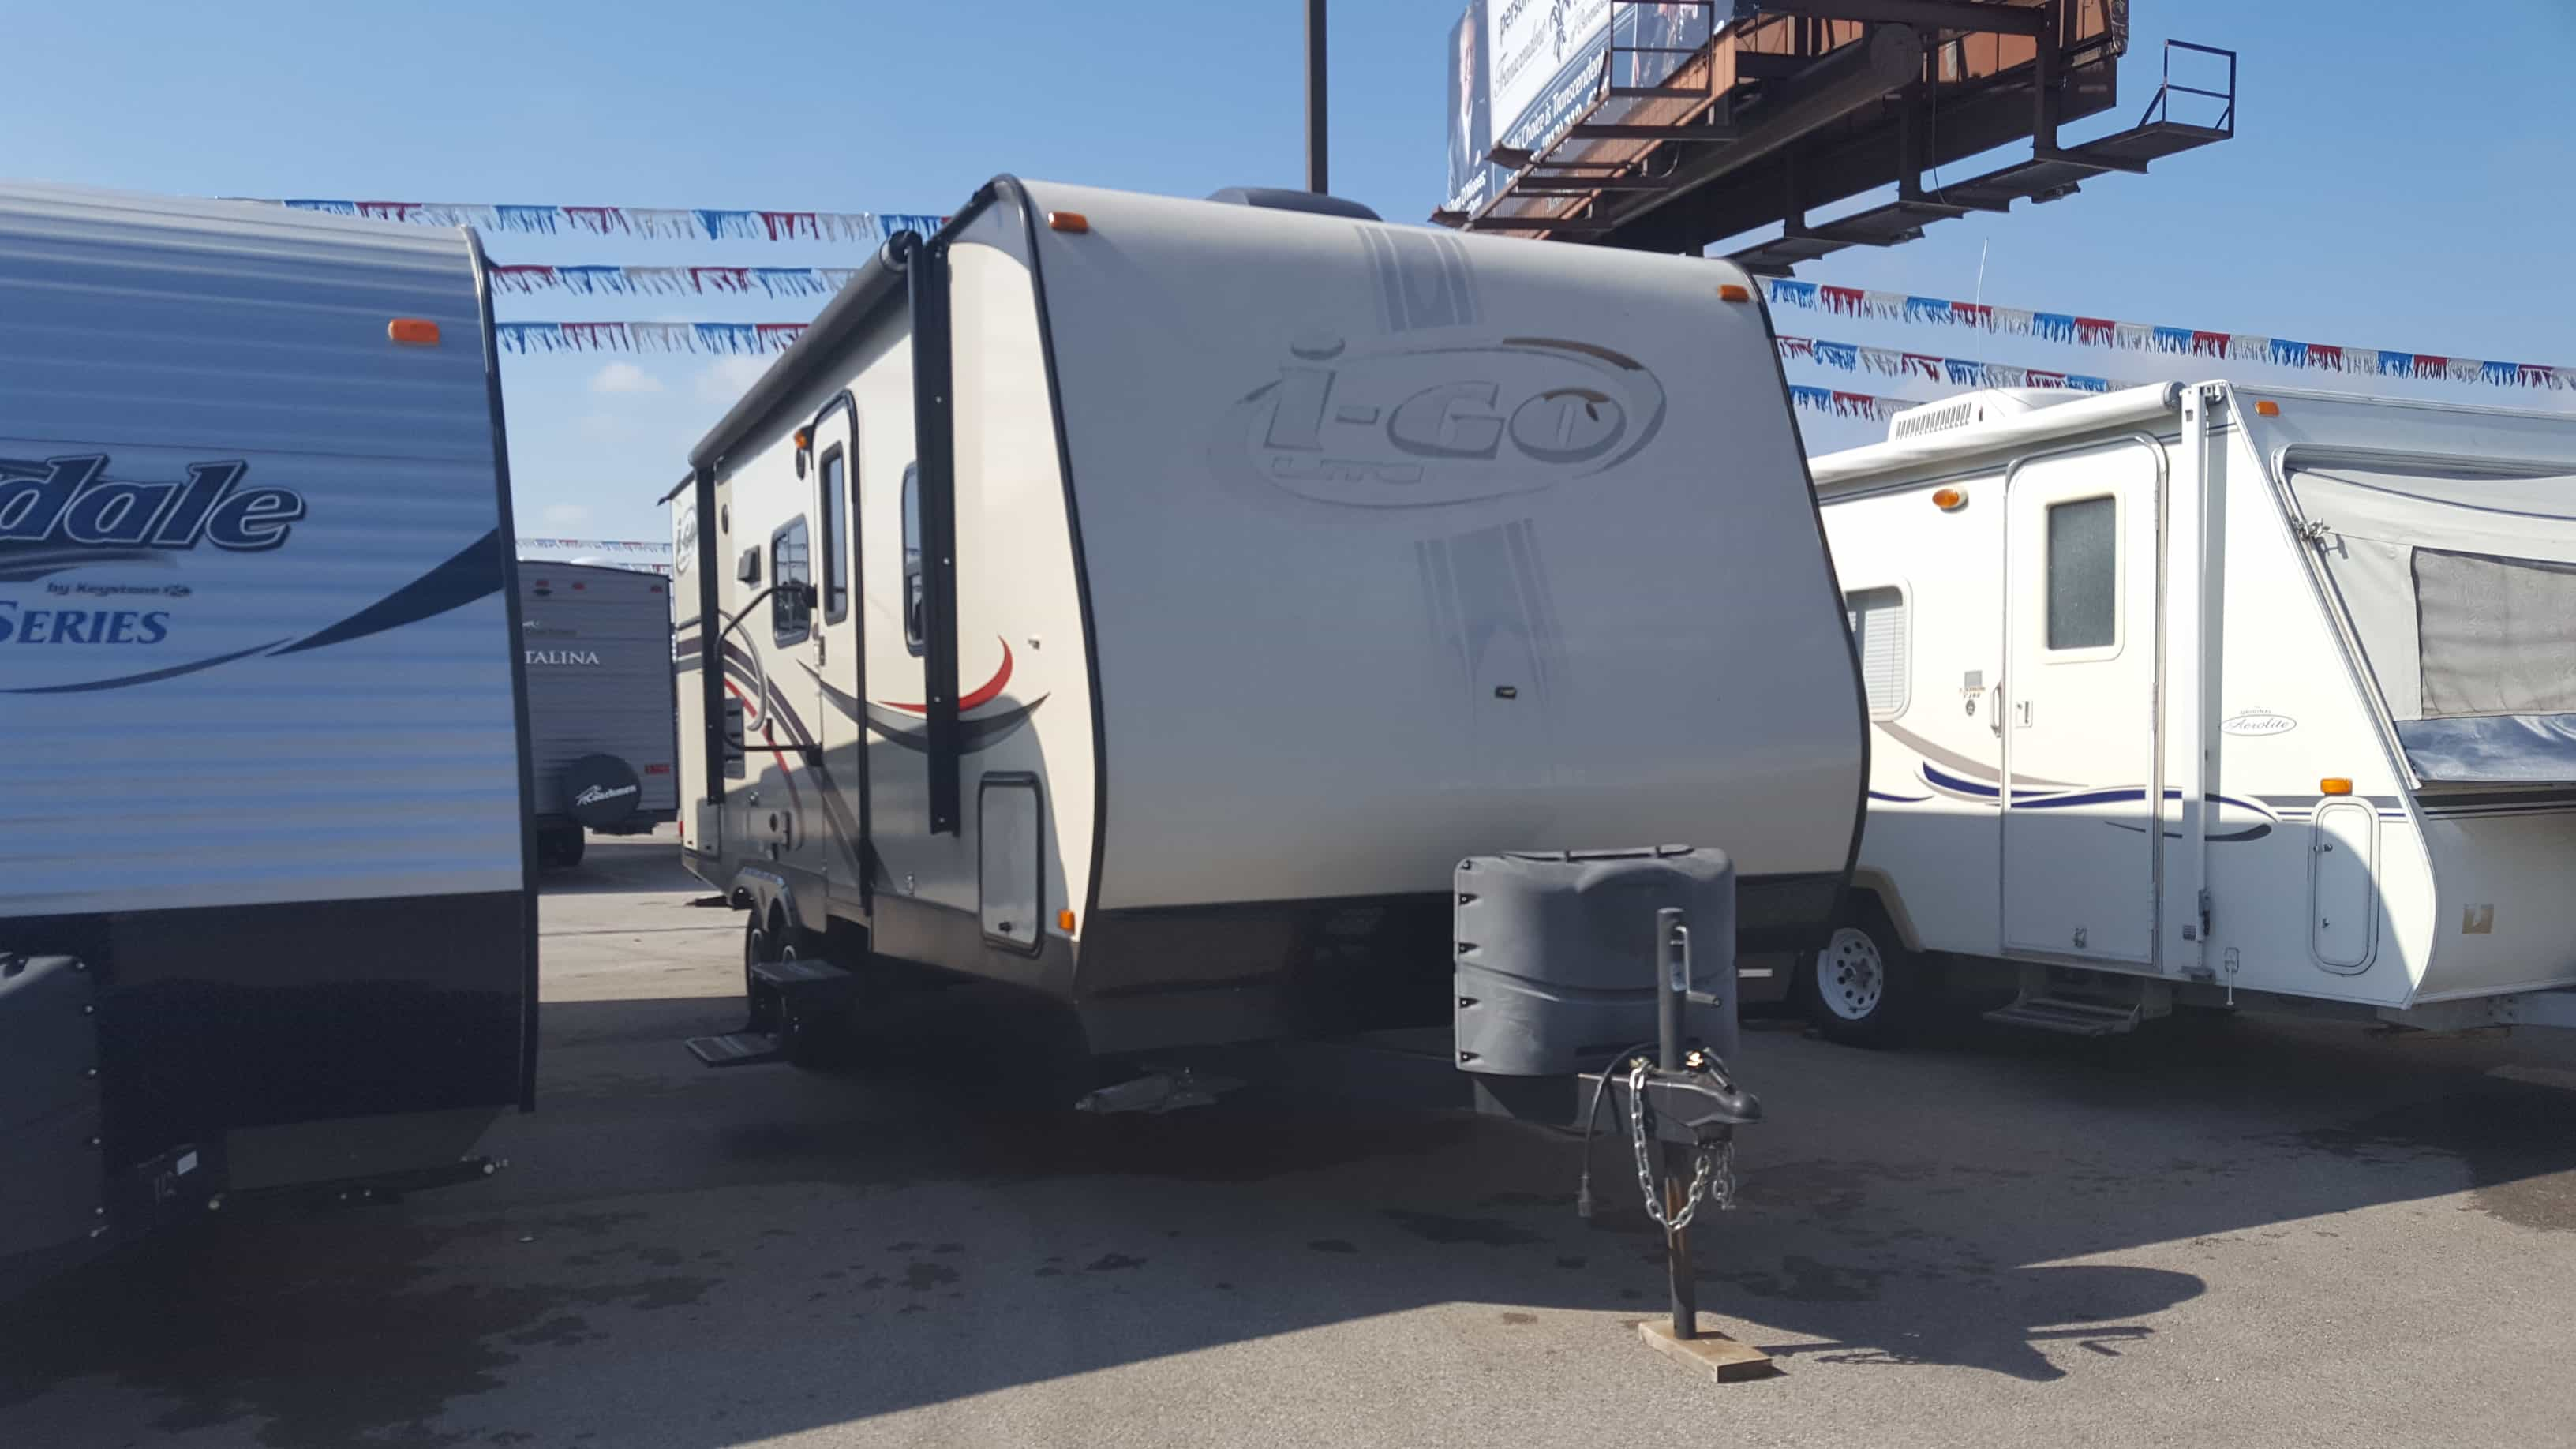 USED 2012 Evergreen Rv iGO 236RBK - American RV